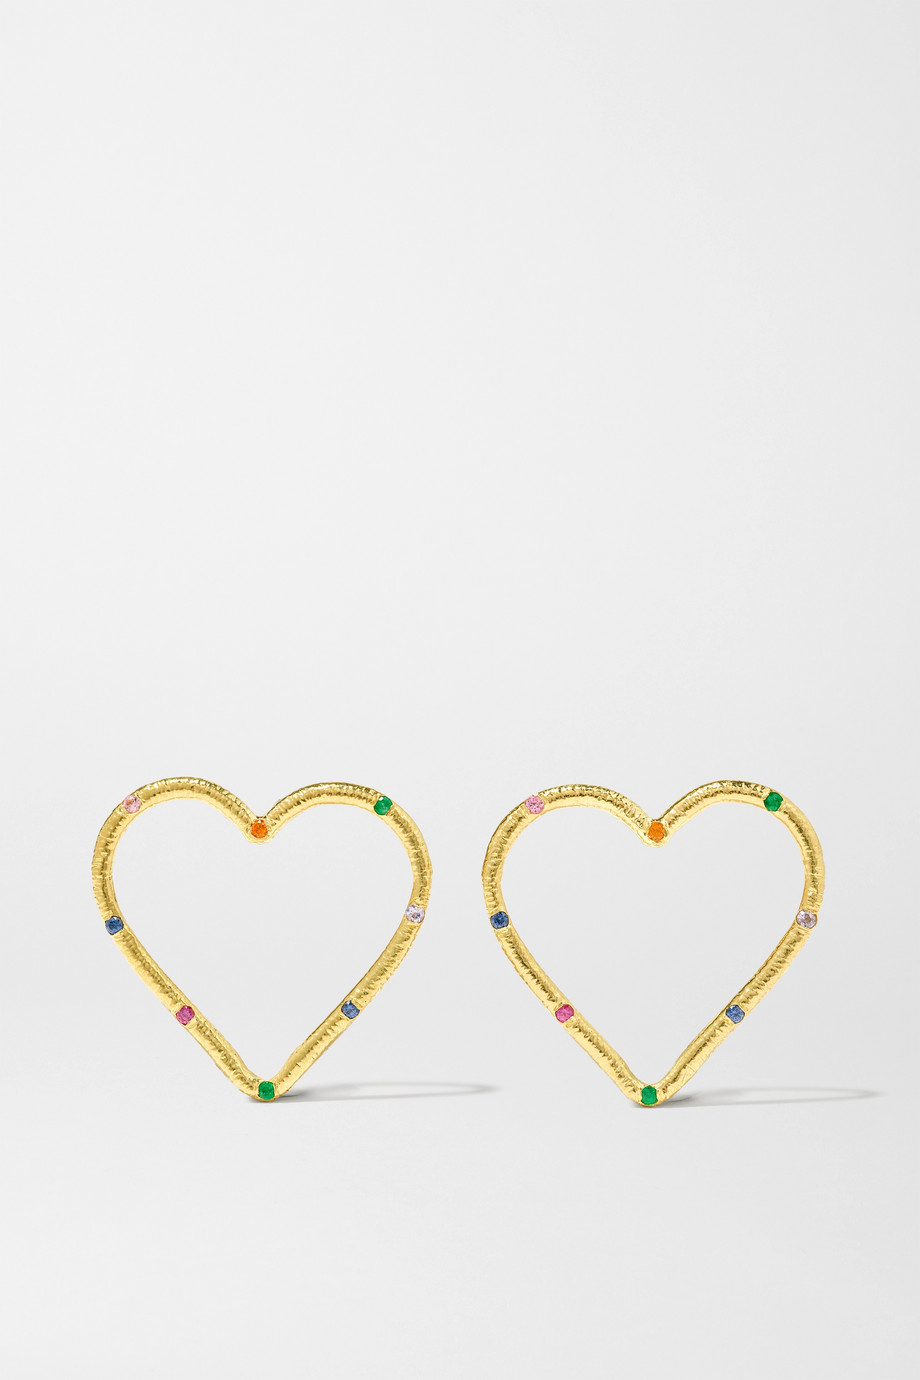 Brent Neale Large Heart 18-karat gold, sapphire and emerald earrings